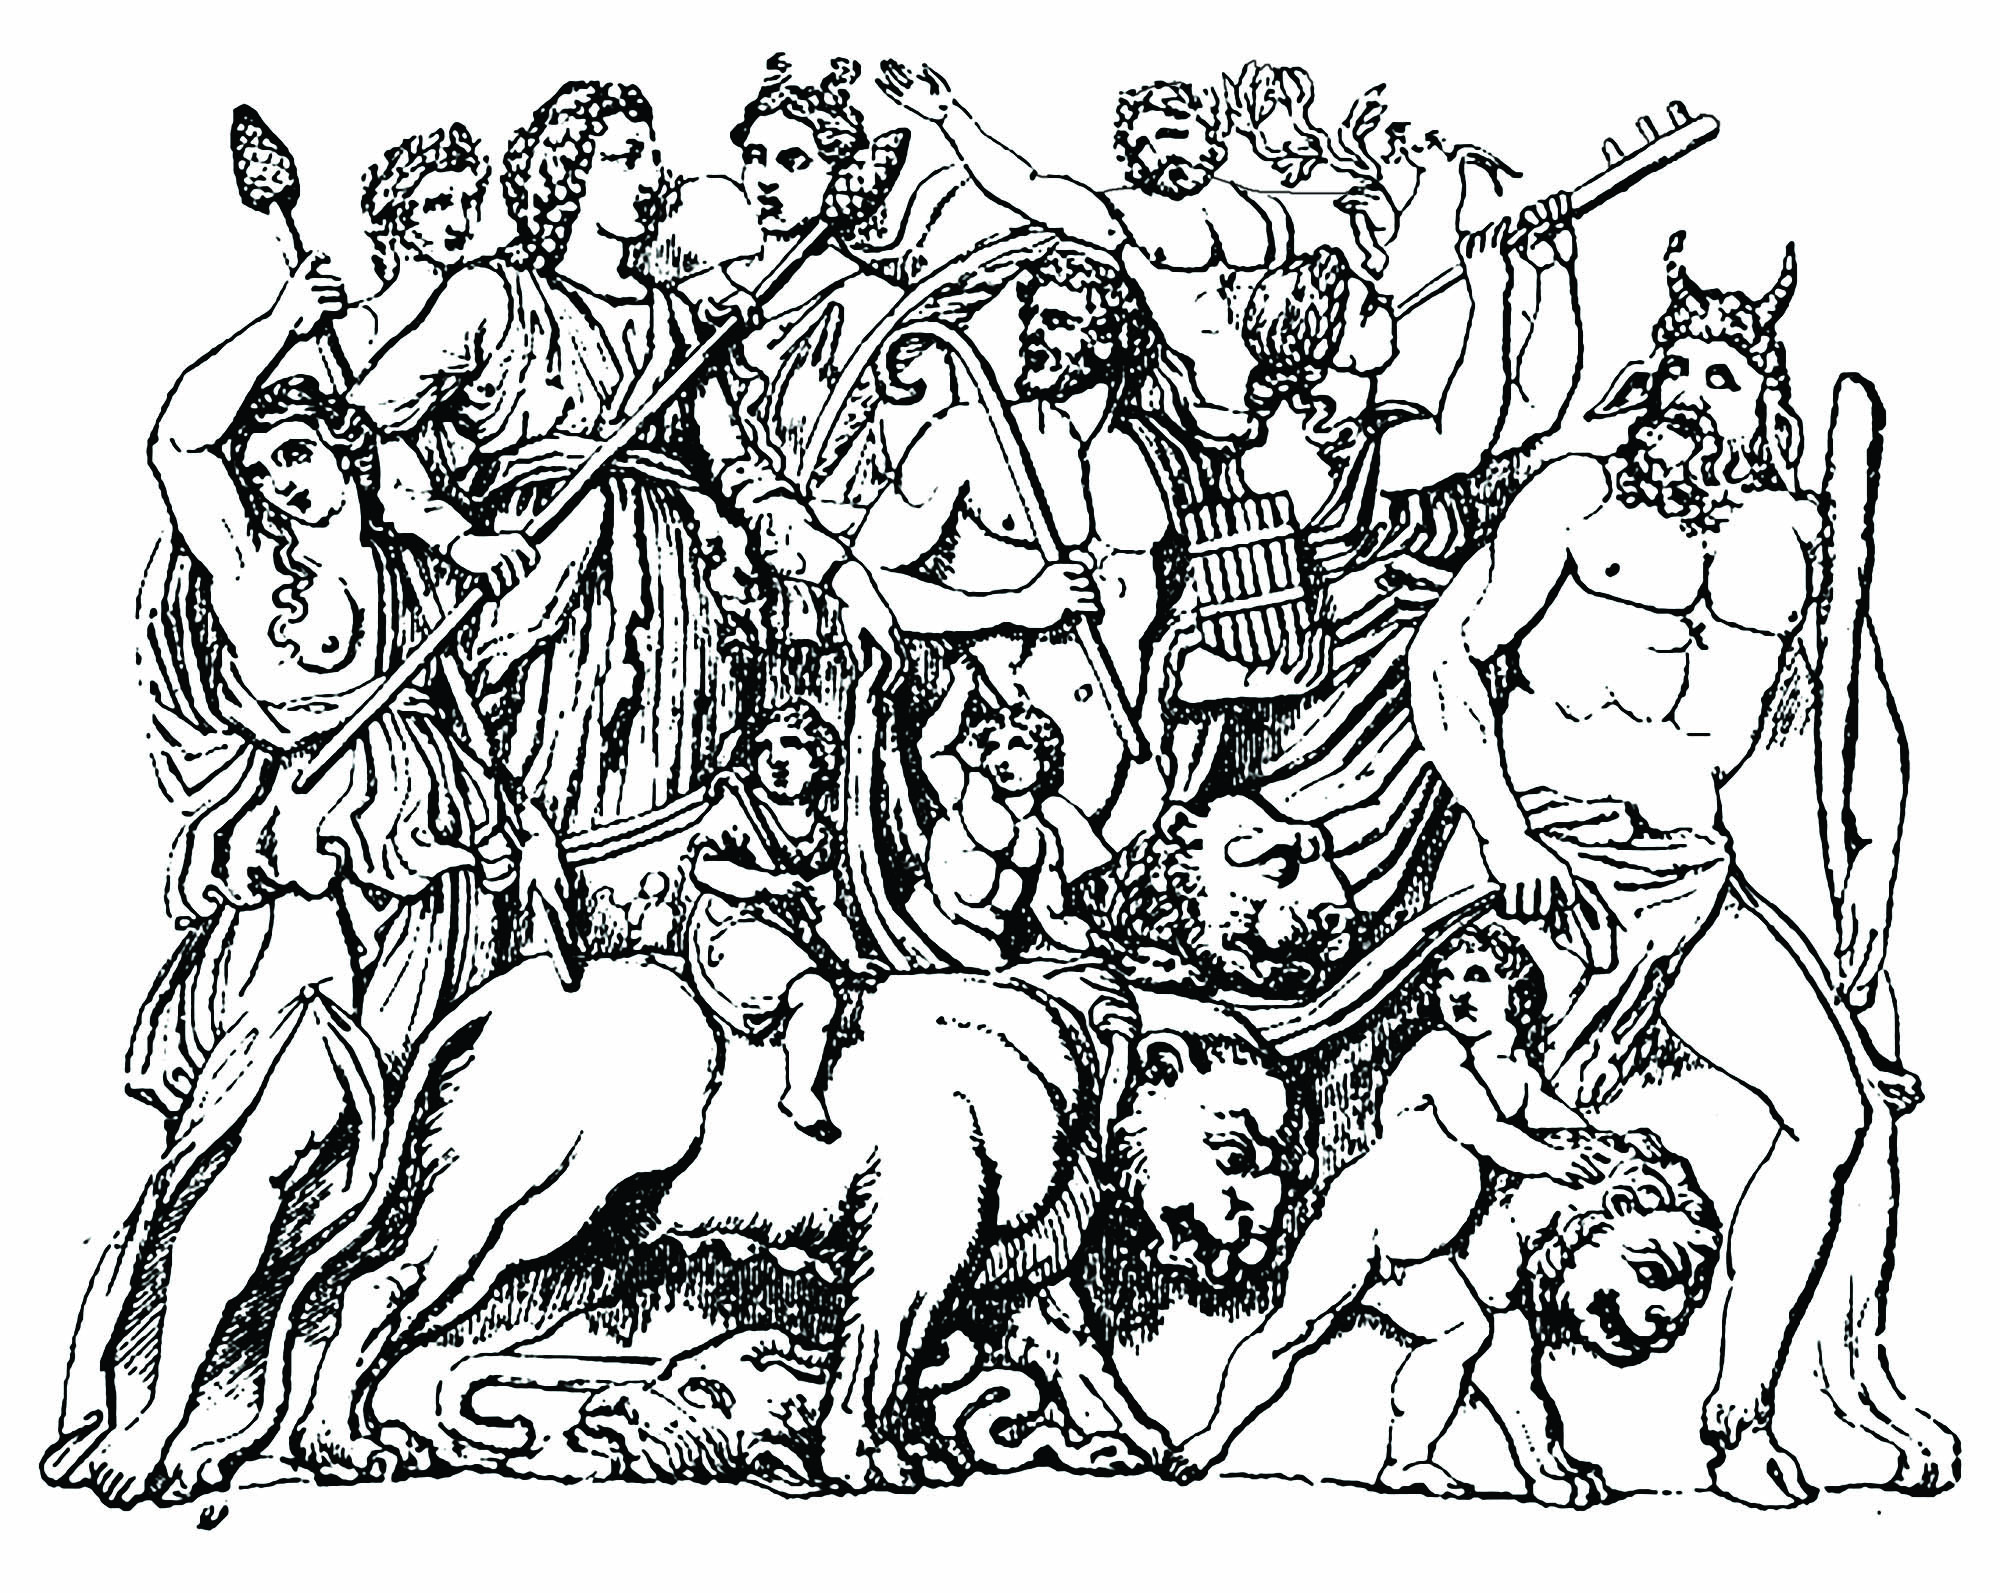 Dionysus drawn by tiger. (Sir William Smith, A Smaller Classical Dictionary of Biography, Mythology, and Geography (1898))